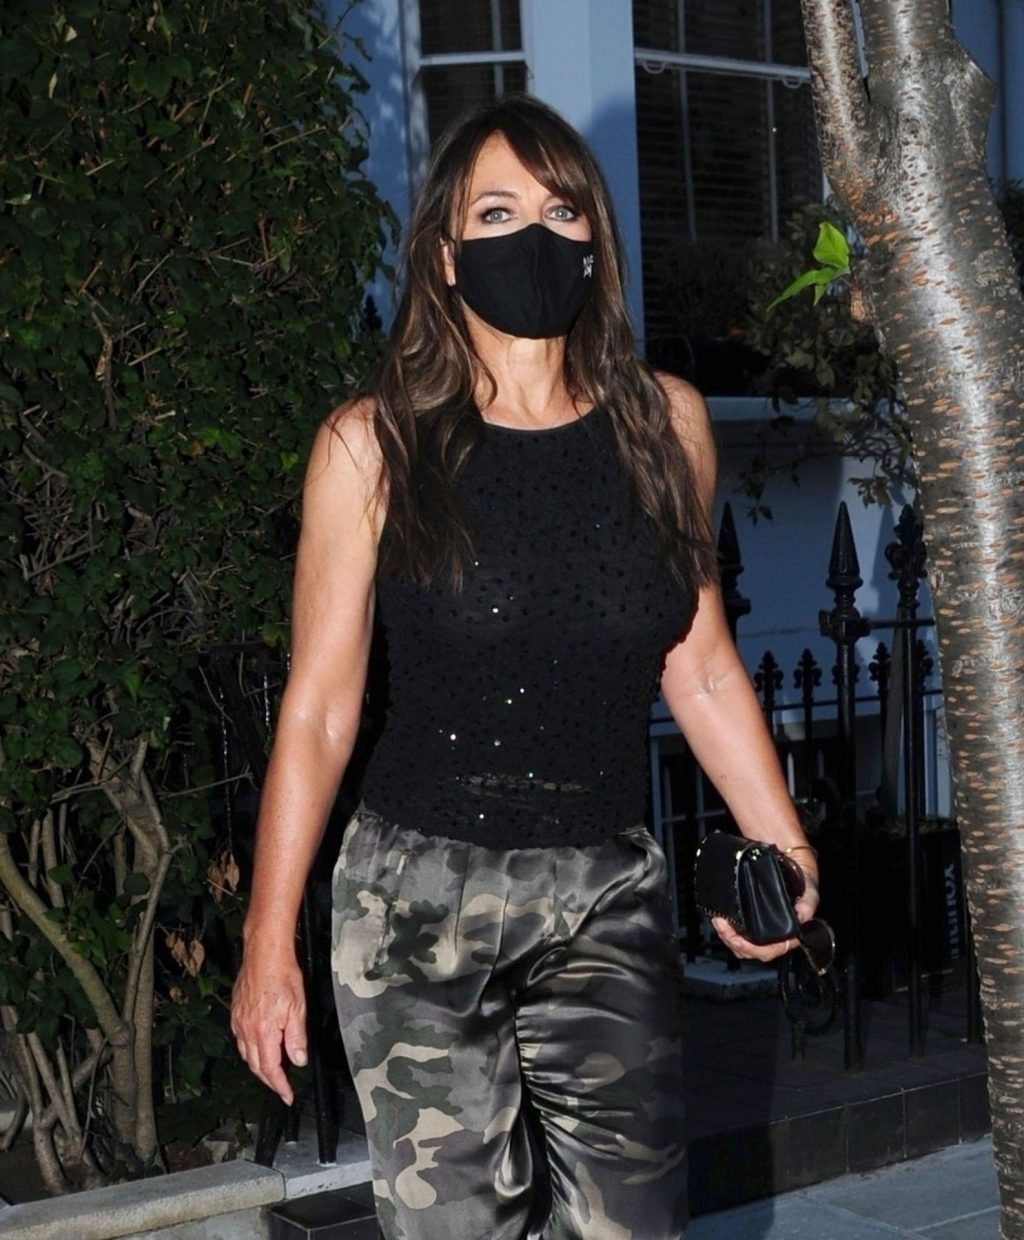 Elizabeth Hurley Steps Out of Her Home Wearing Her Protective Face Mask (23 Photos)